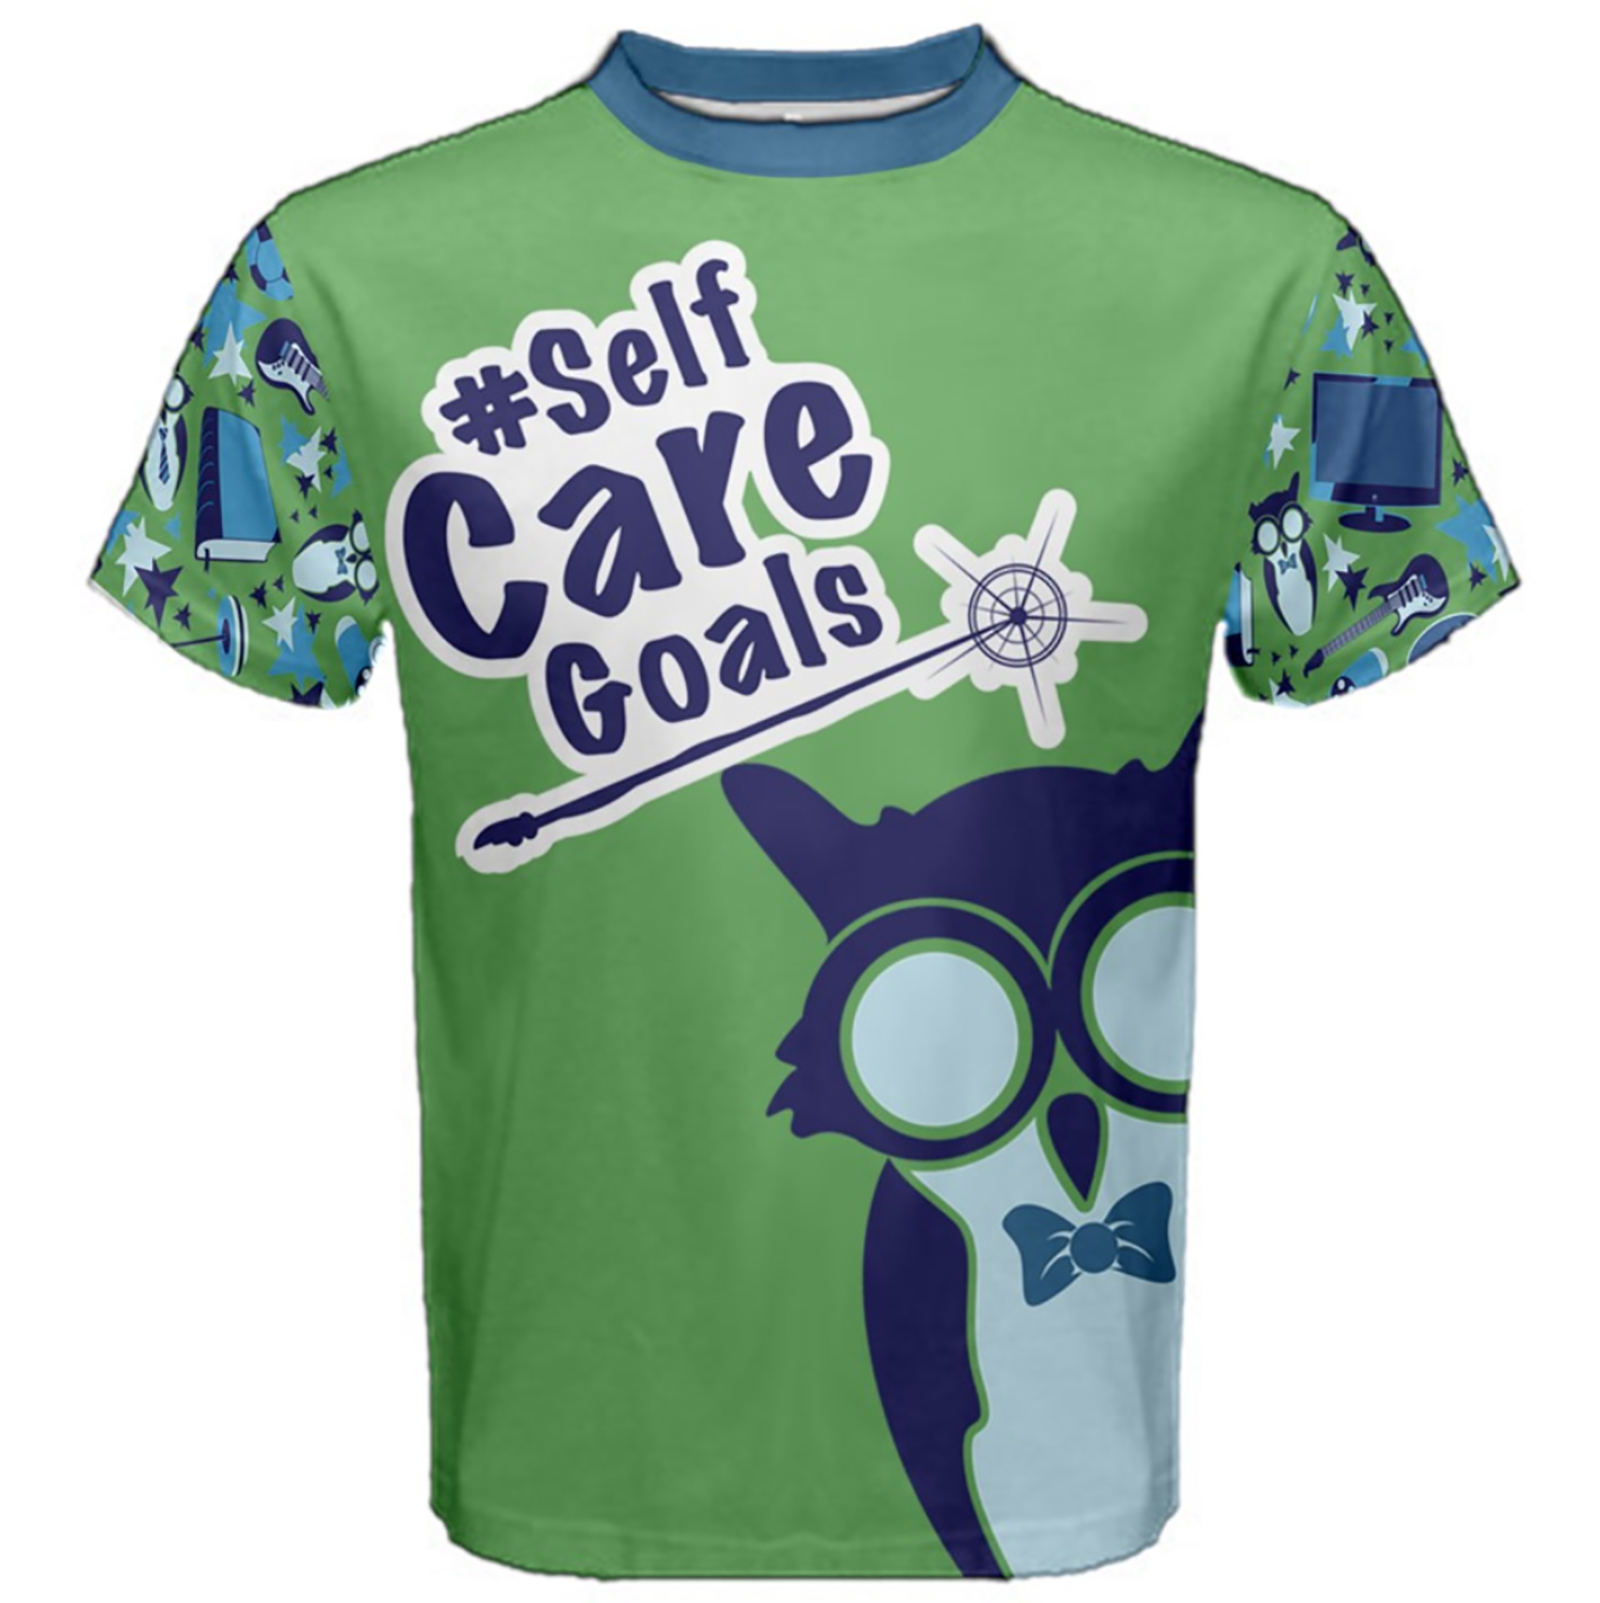 Self-Care Men's Cotton Tee (Green Solid Background)